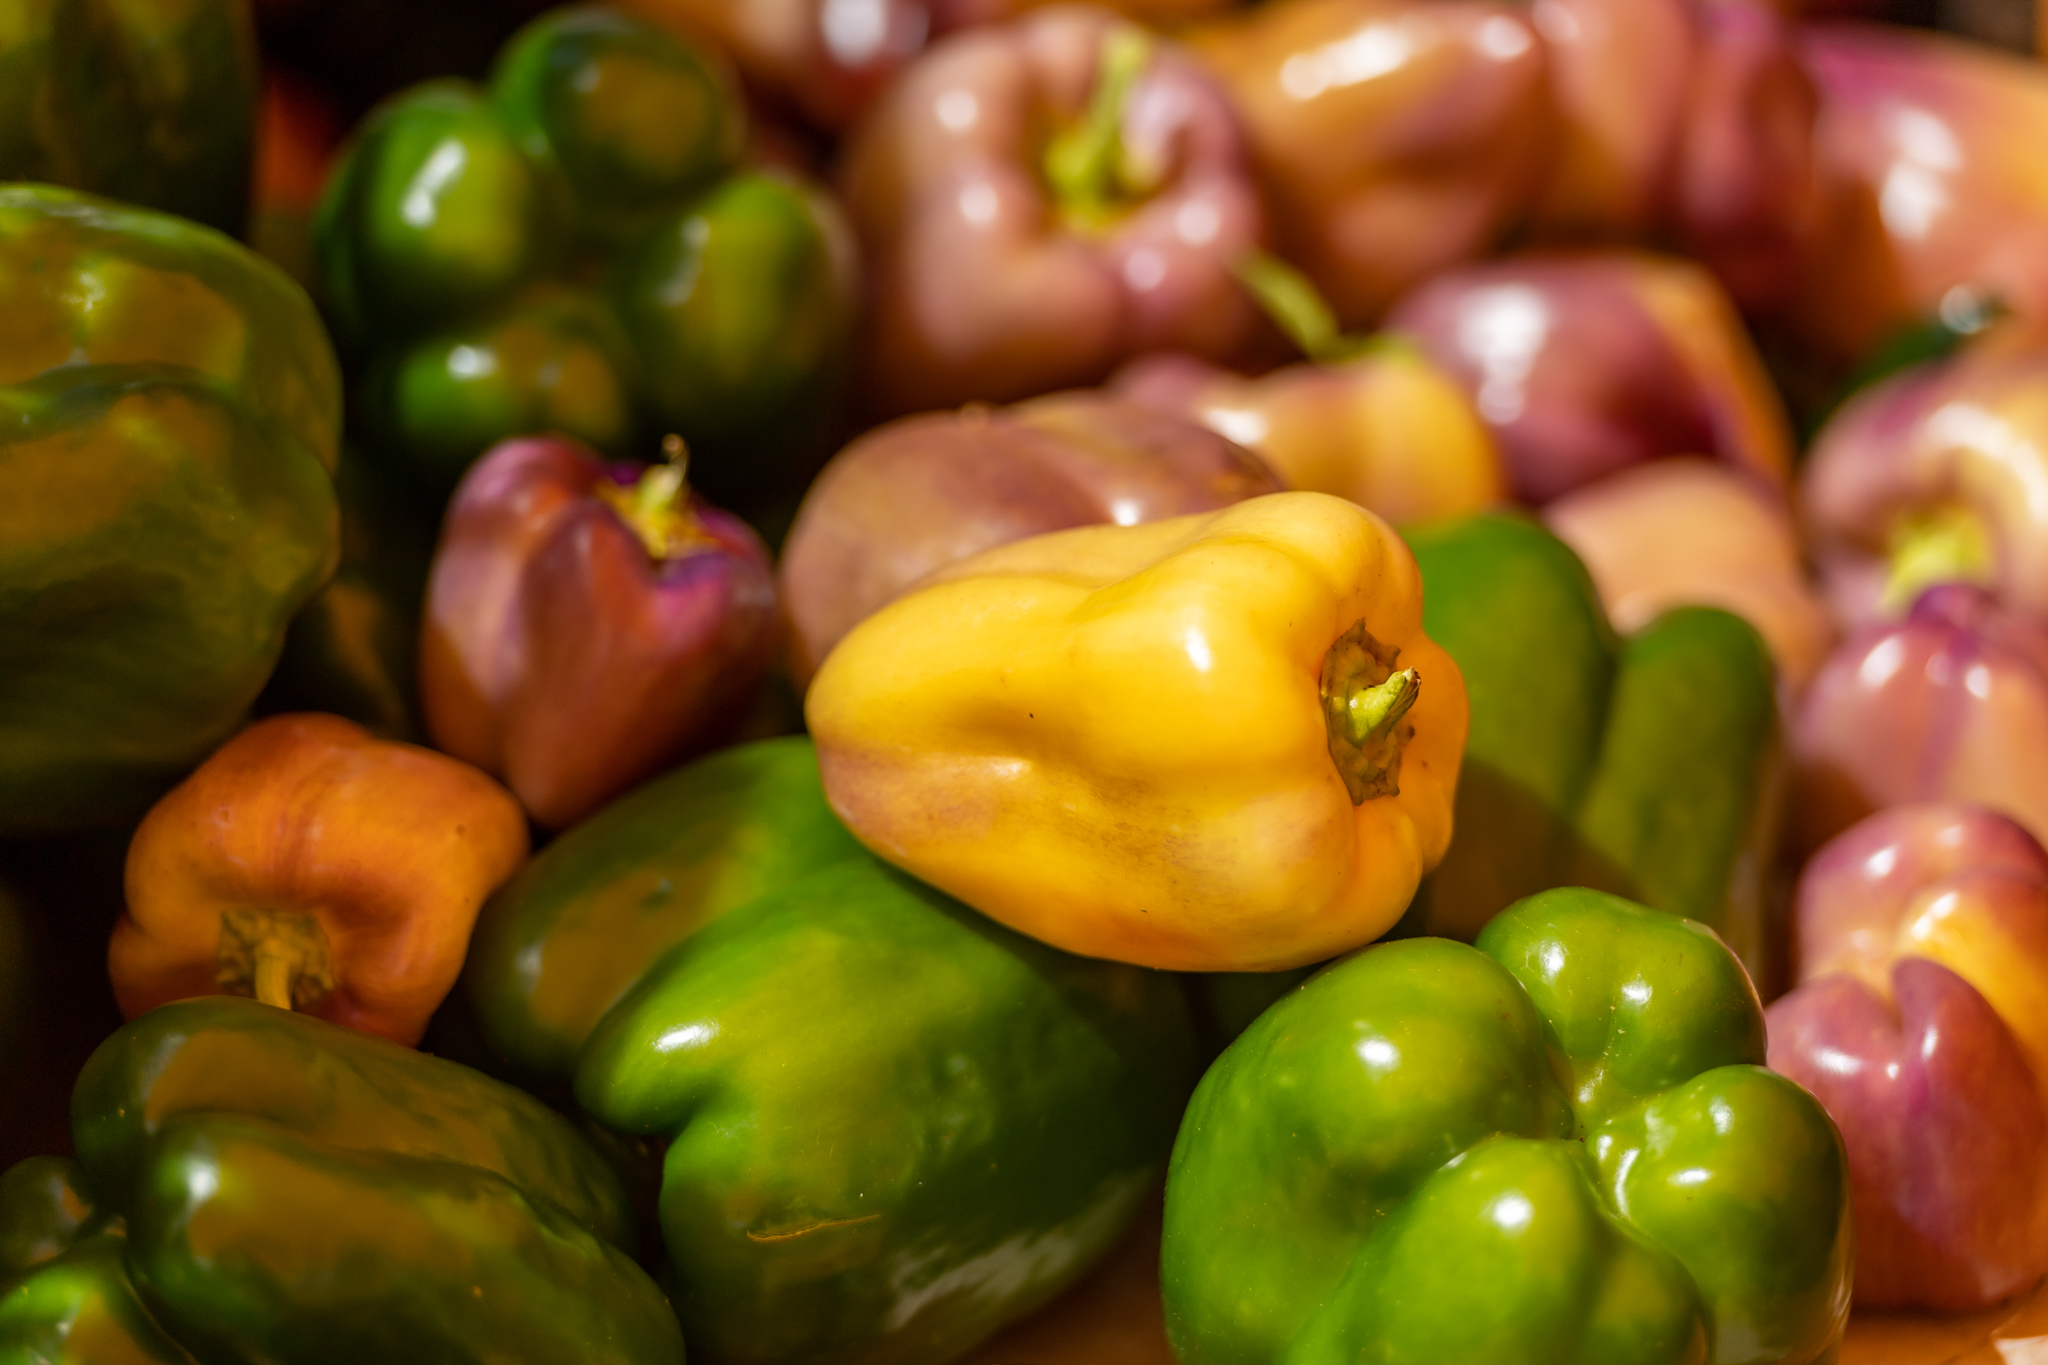 A pile of bell peppers from the Farmers Market, in greens, yellows, and purples.